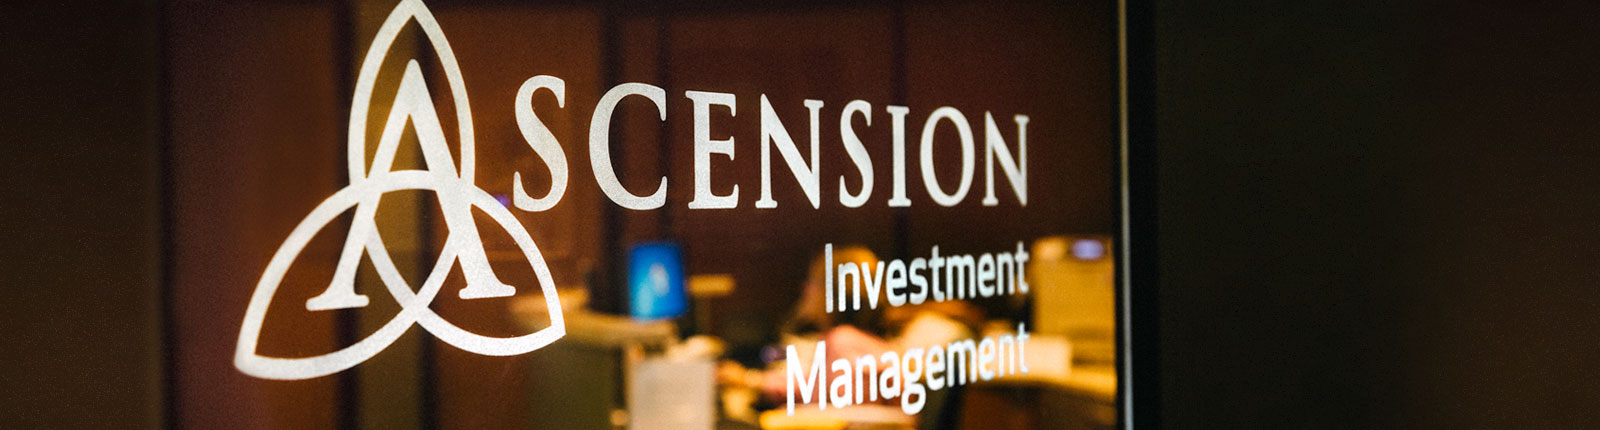 Ascension Investment Management